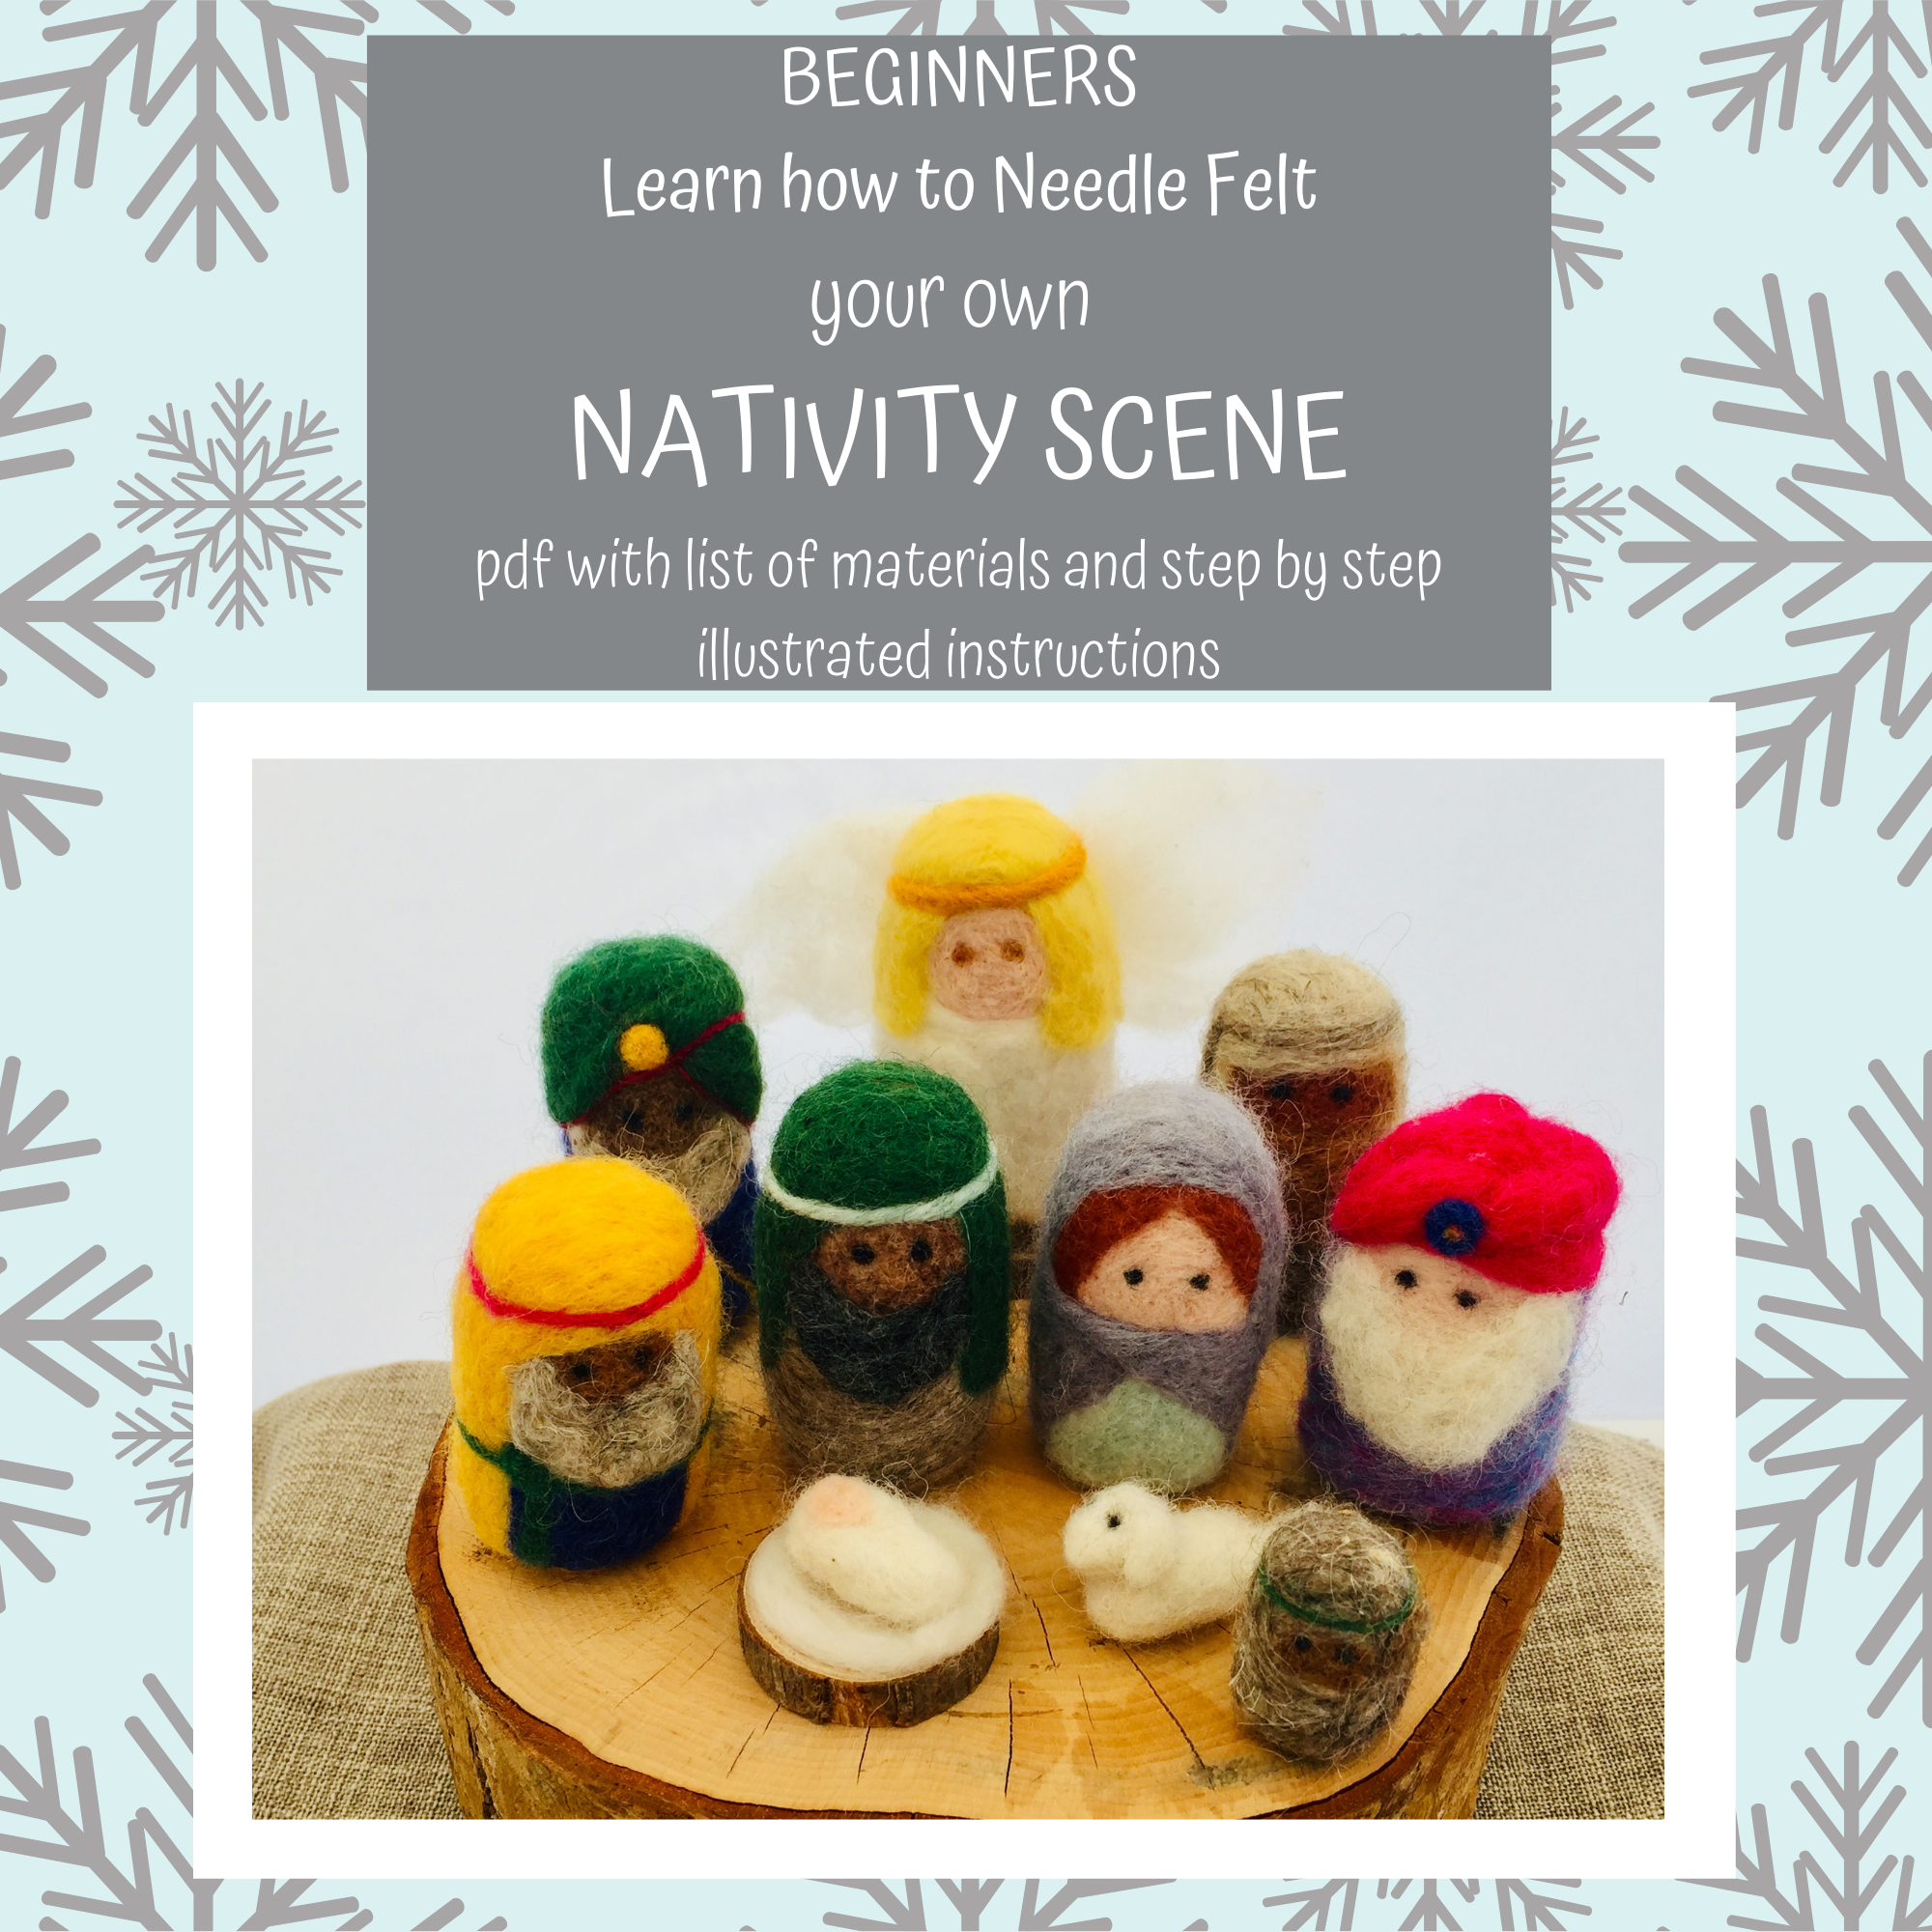 PDF Download - Instructions How to Needle Felt The Nativity Scene for Beginners plus Materials List